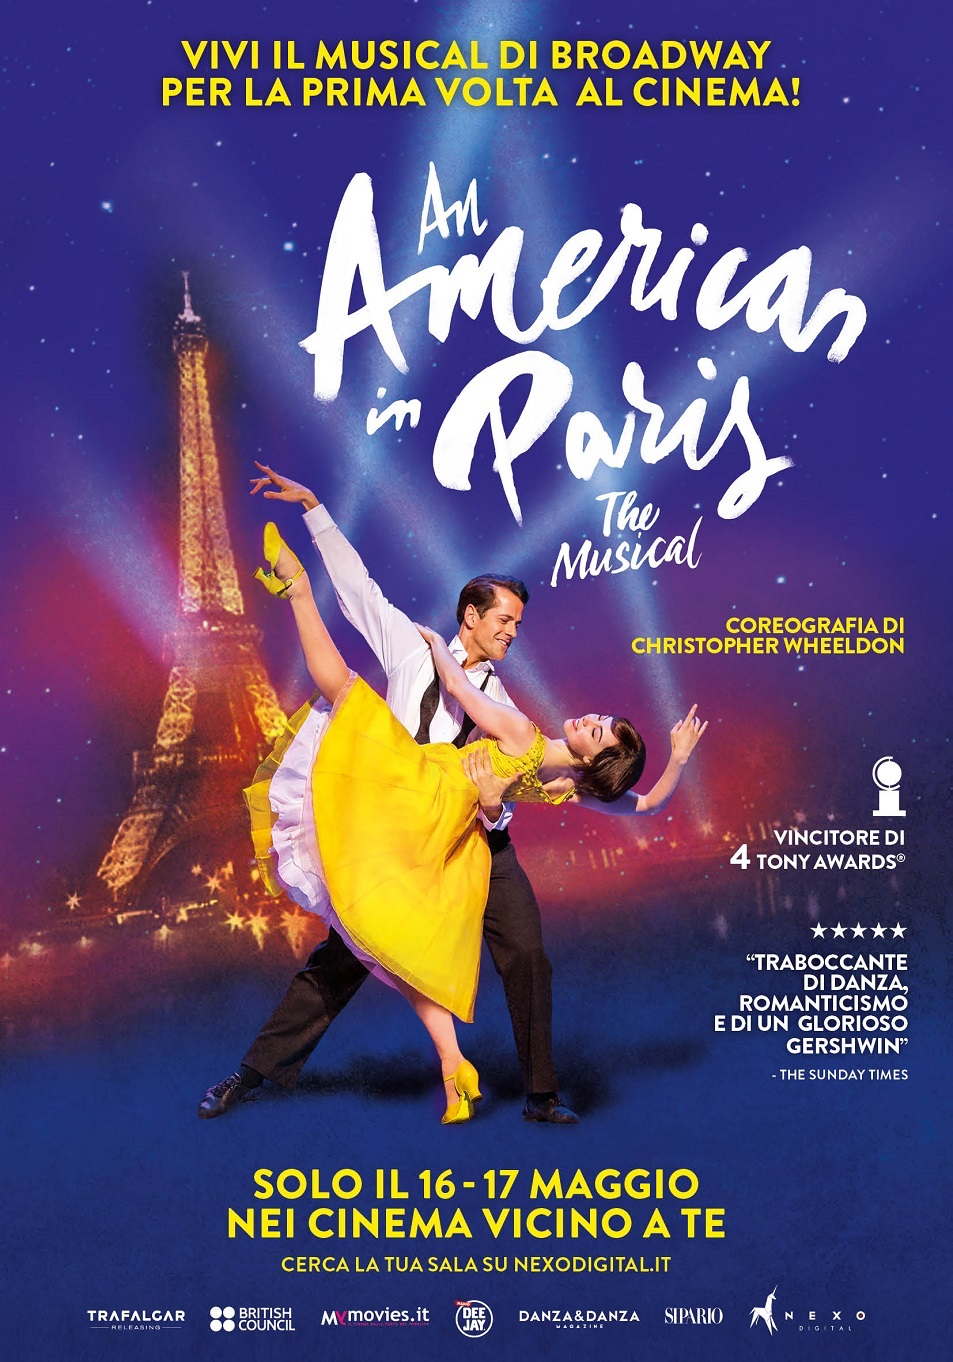 An American in Paris, il musical di Broadway, al cinema il 16 e 17 maggio